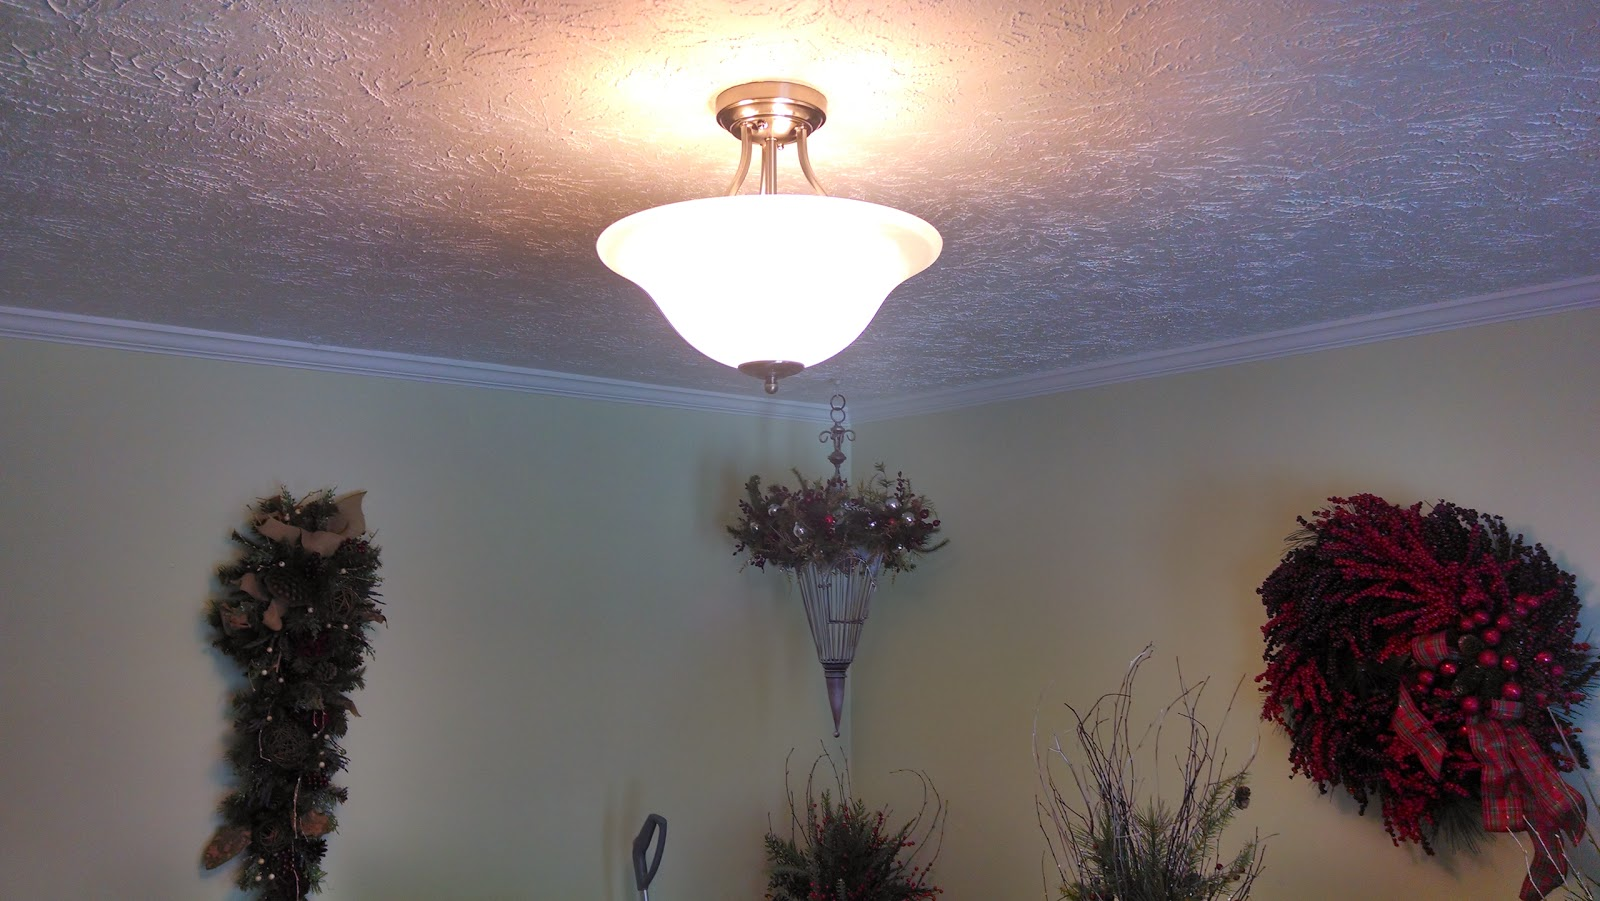 Mark s Project Blog  Replacing a ceiling fan with a light fixture Replacing a ceiling fan with a light fixture